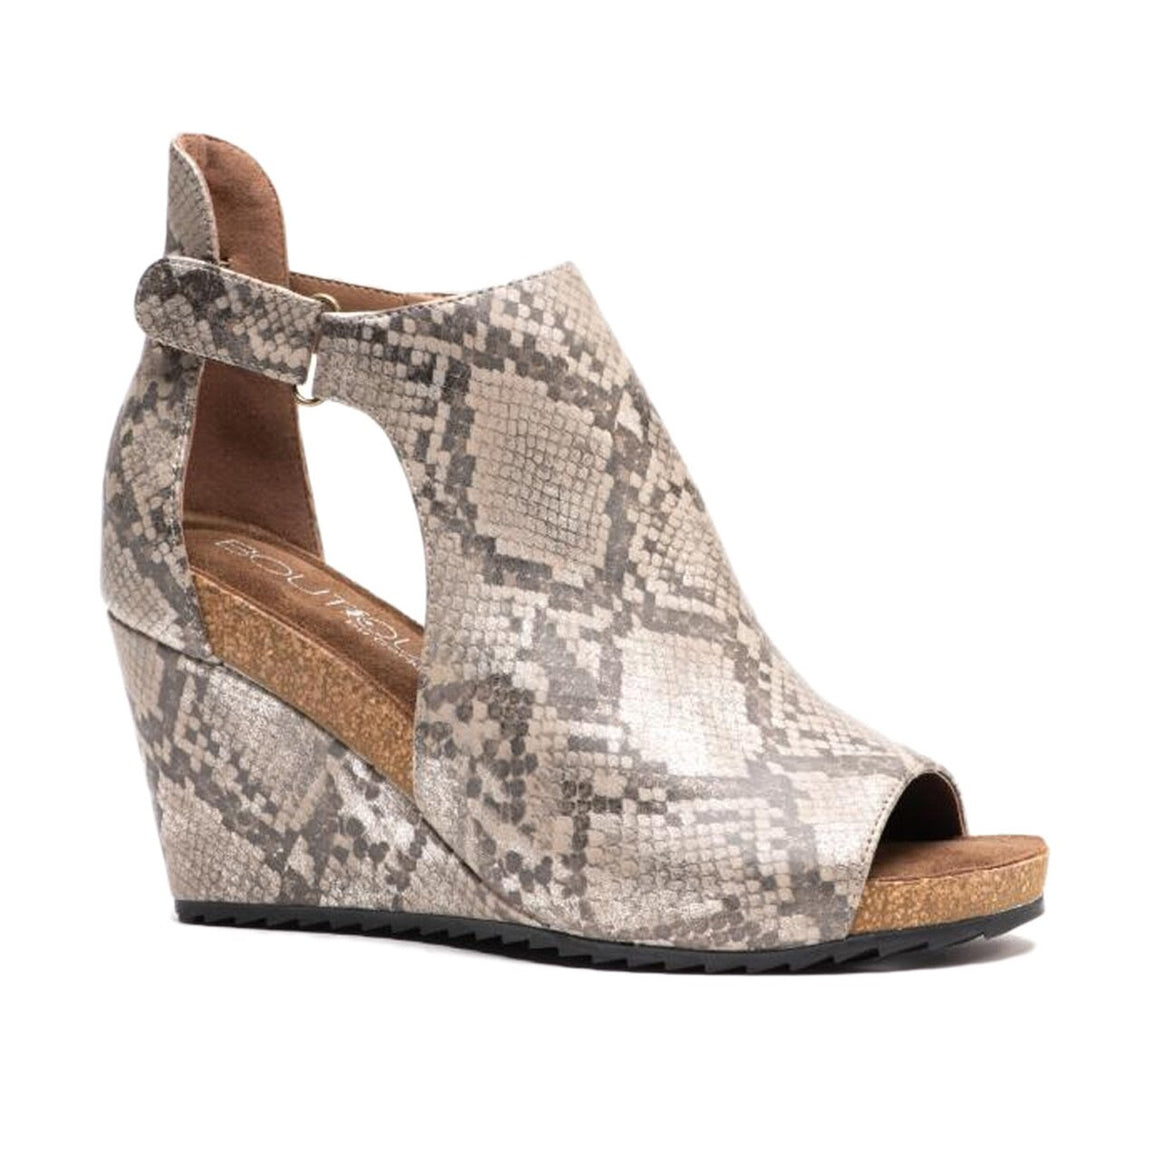 Corkys Women's Sunburst Peep Toe Wedge Taupe Snake 30-5333